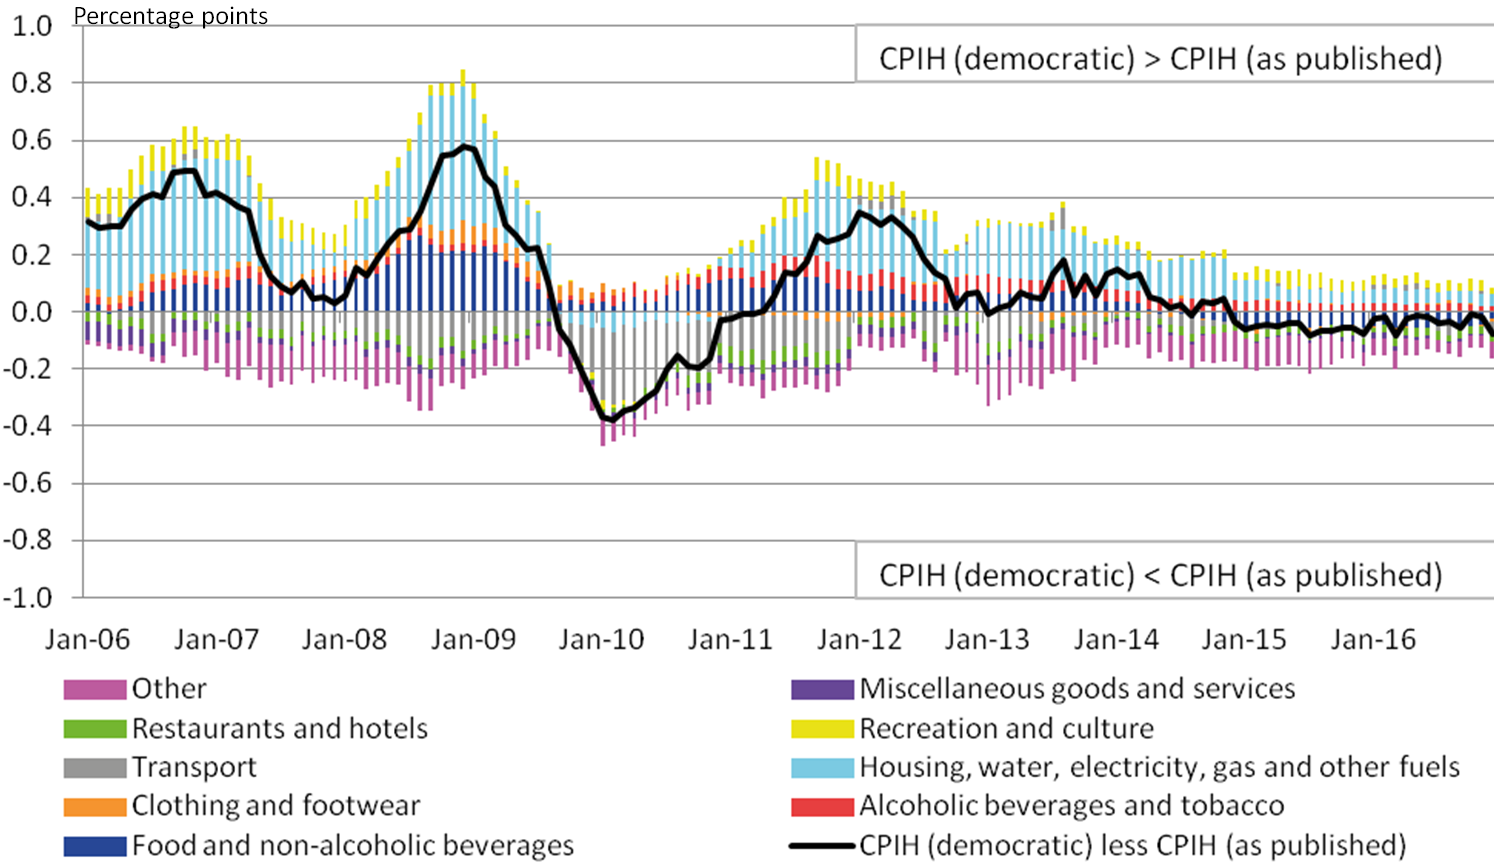 Housing, food and drink contribute to the democratically weighted CPIH growing faster than the plutocratically weighted CPIH (as published). This is partially offset by transport and 'other' which lead to the published CPIH experiencing stronger growth. The differences have converged since 2014.